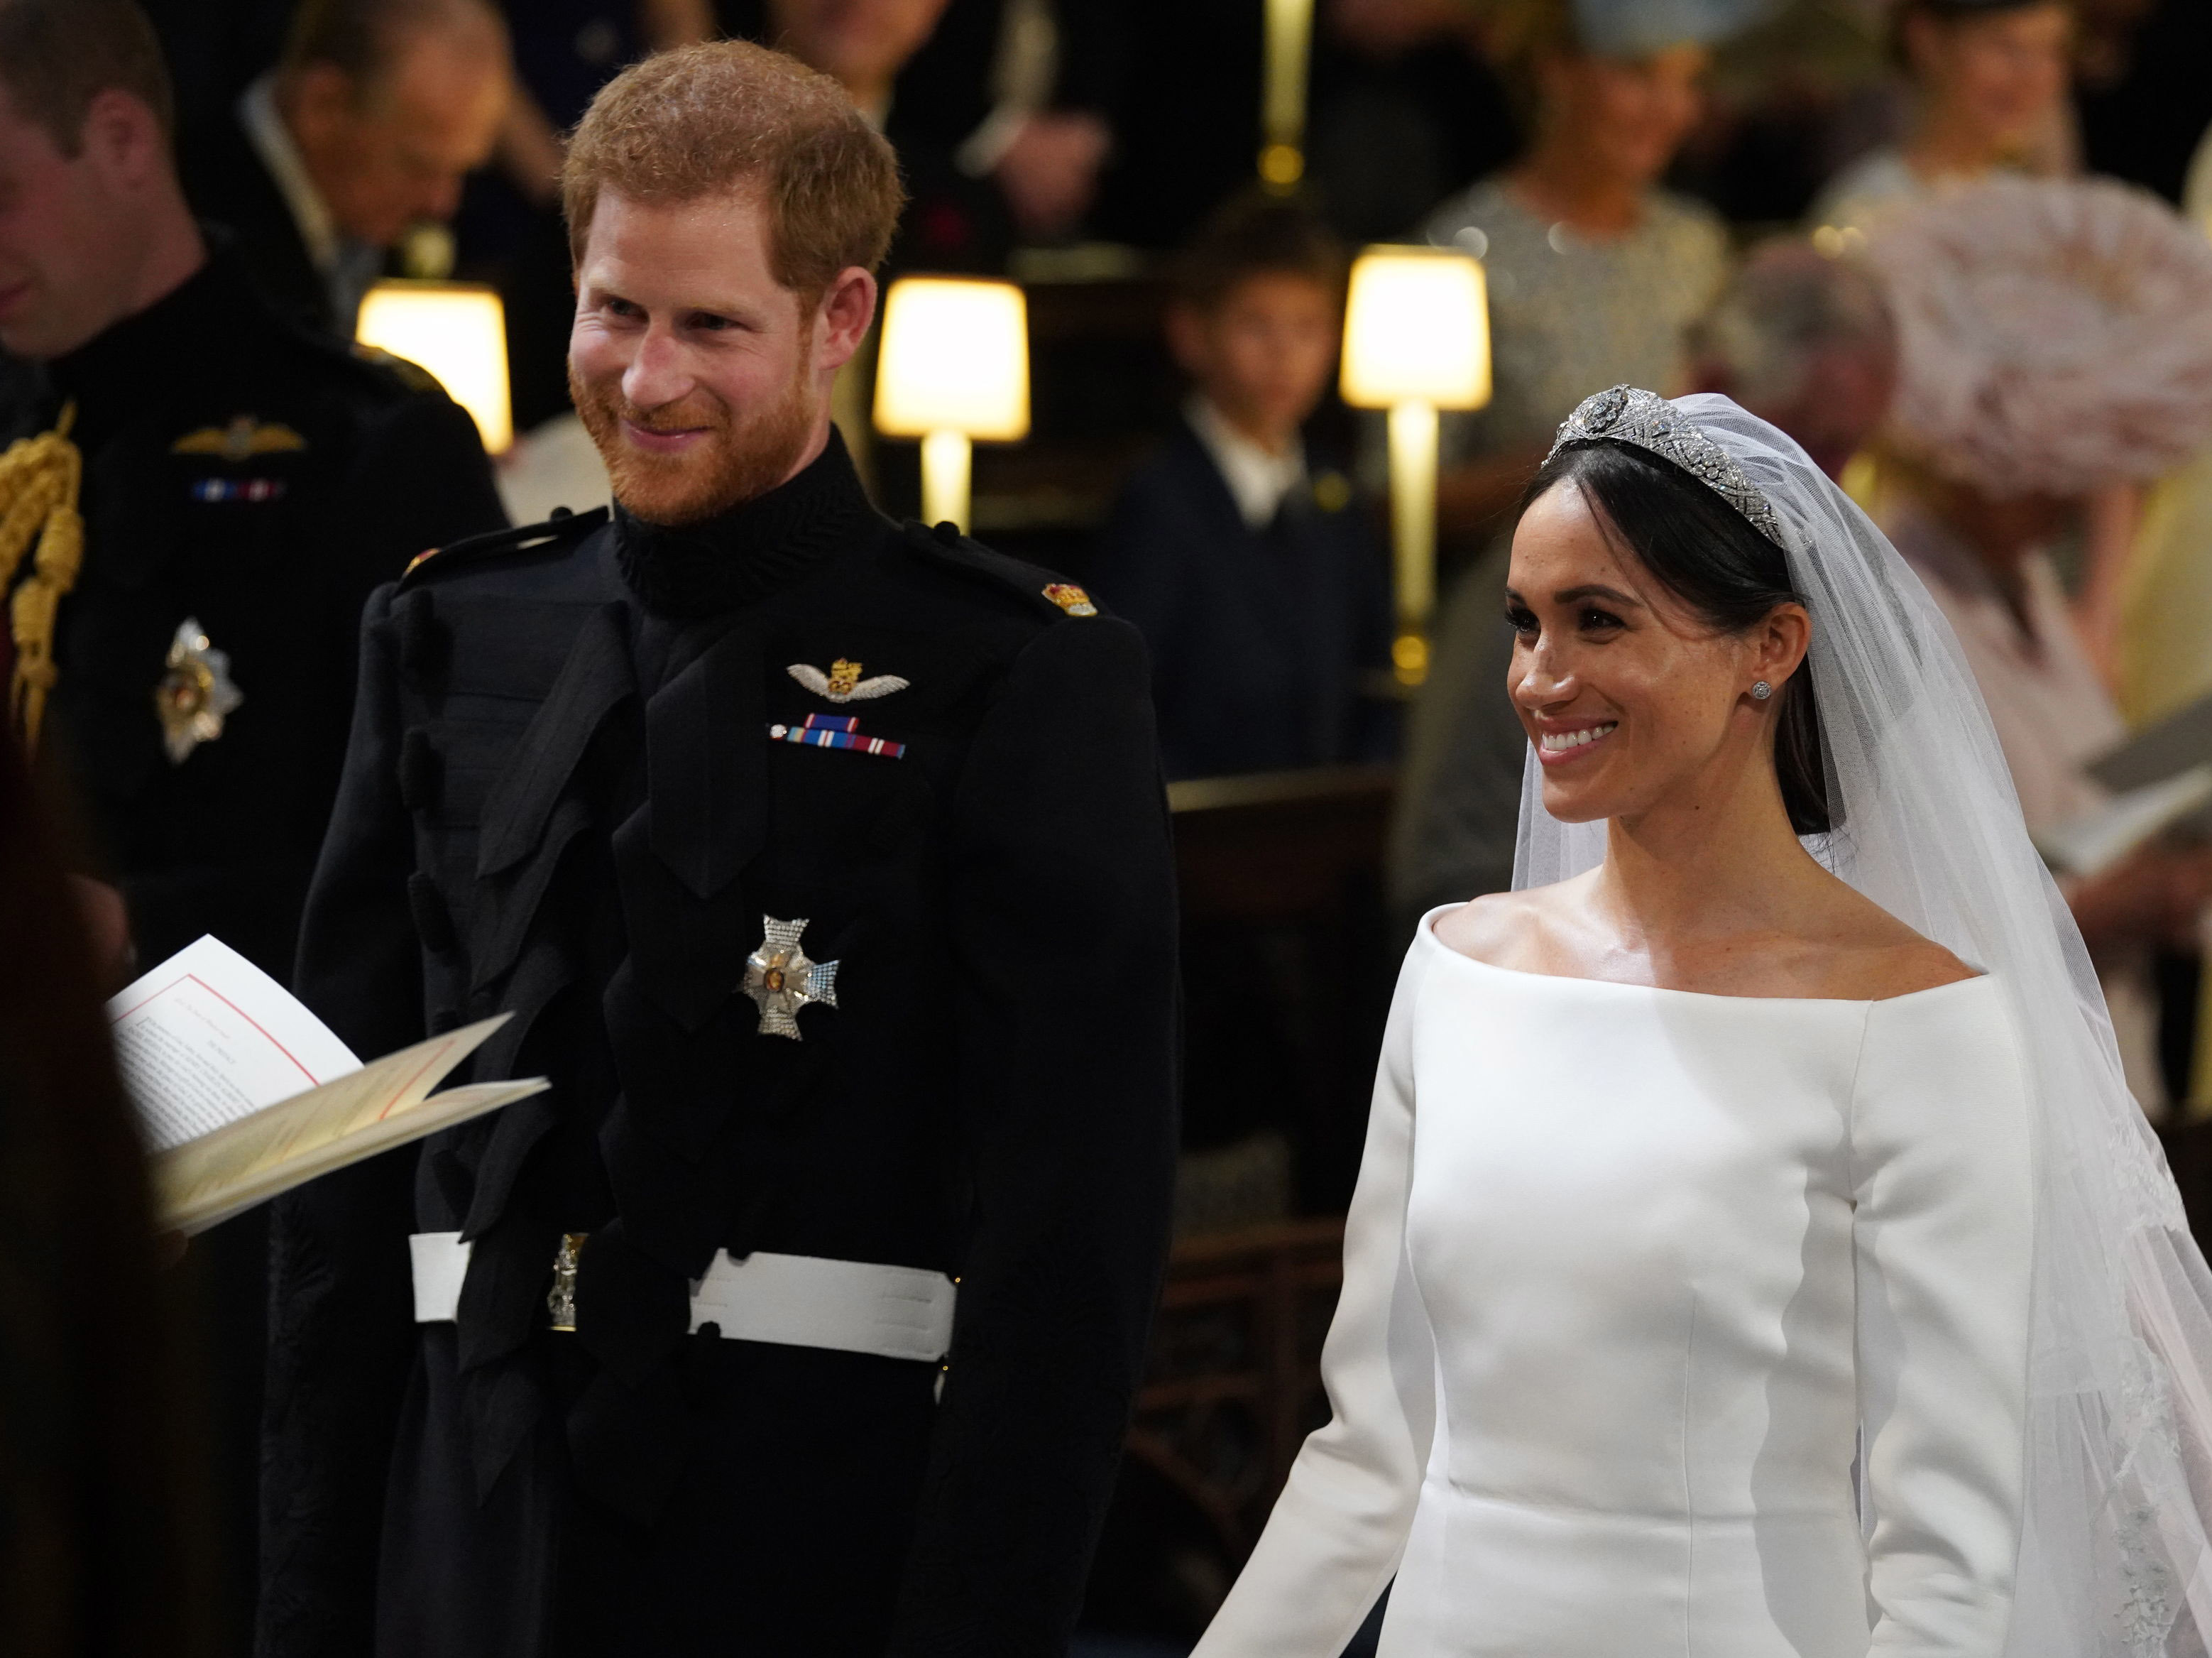 The Best Meghan Markle Prince Harry Wedding Photos